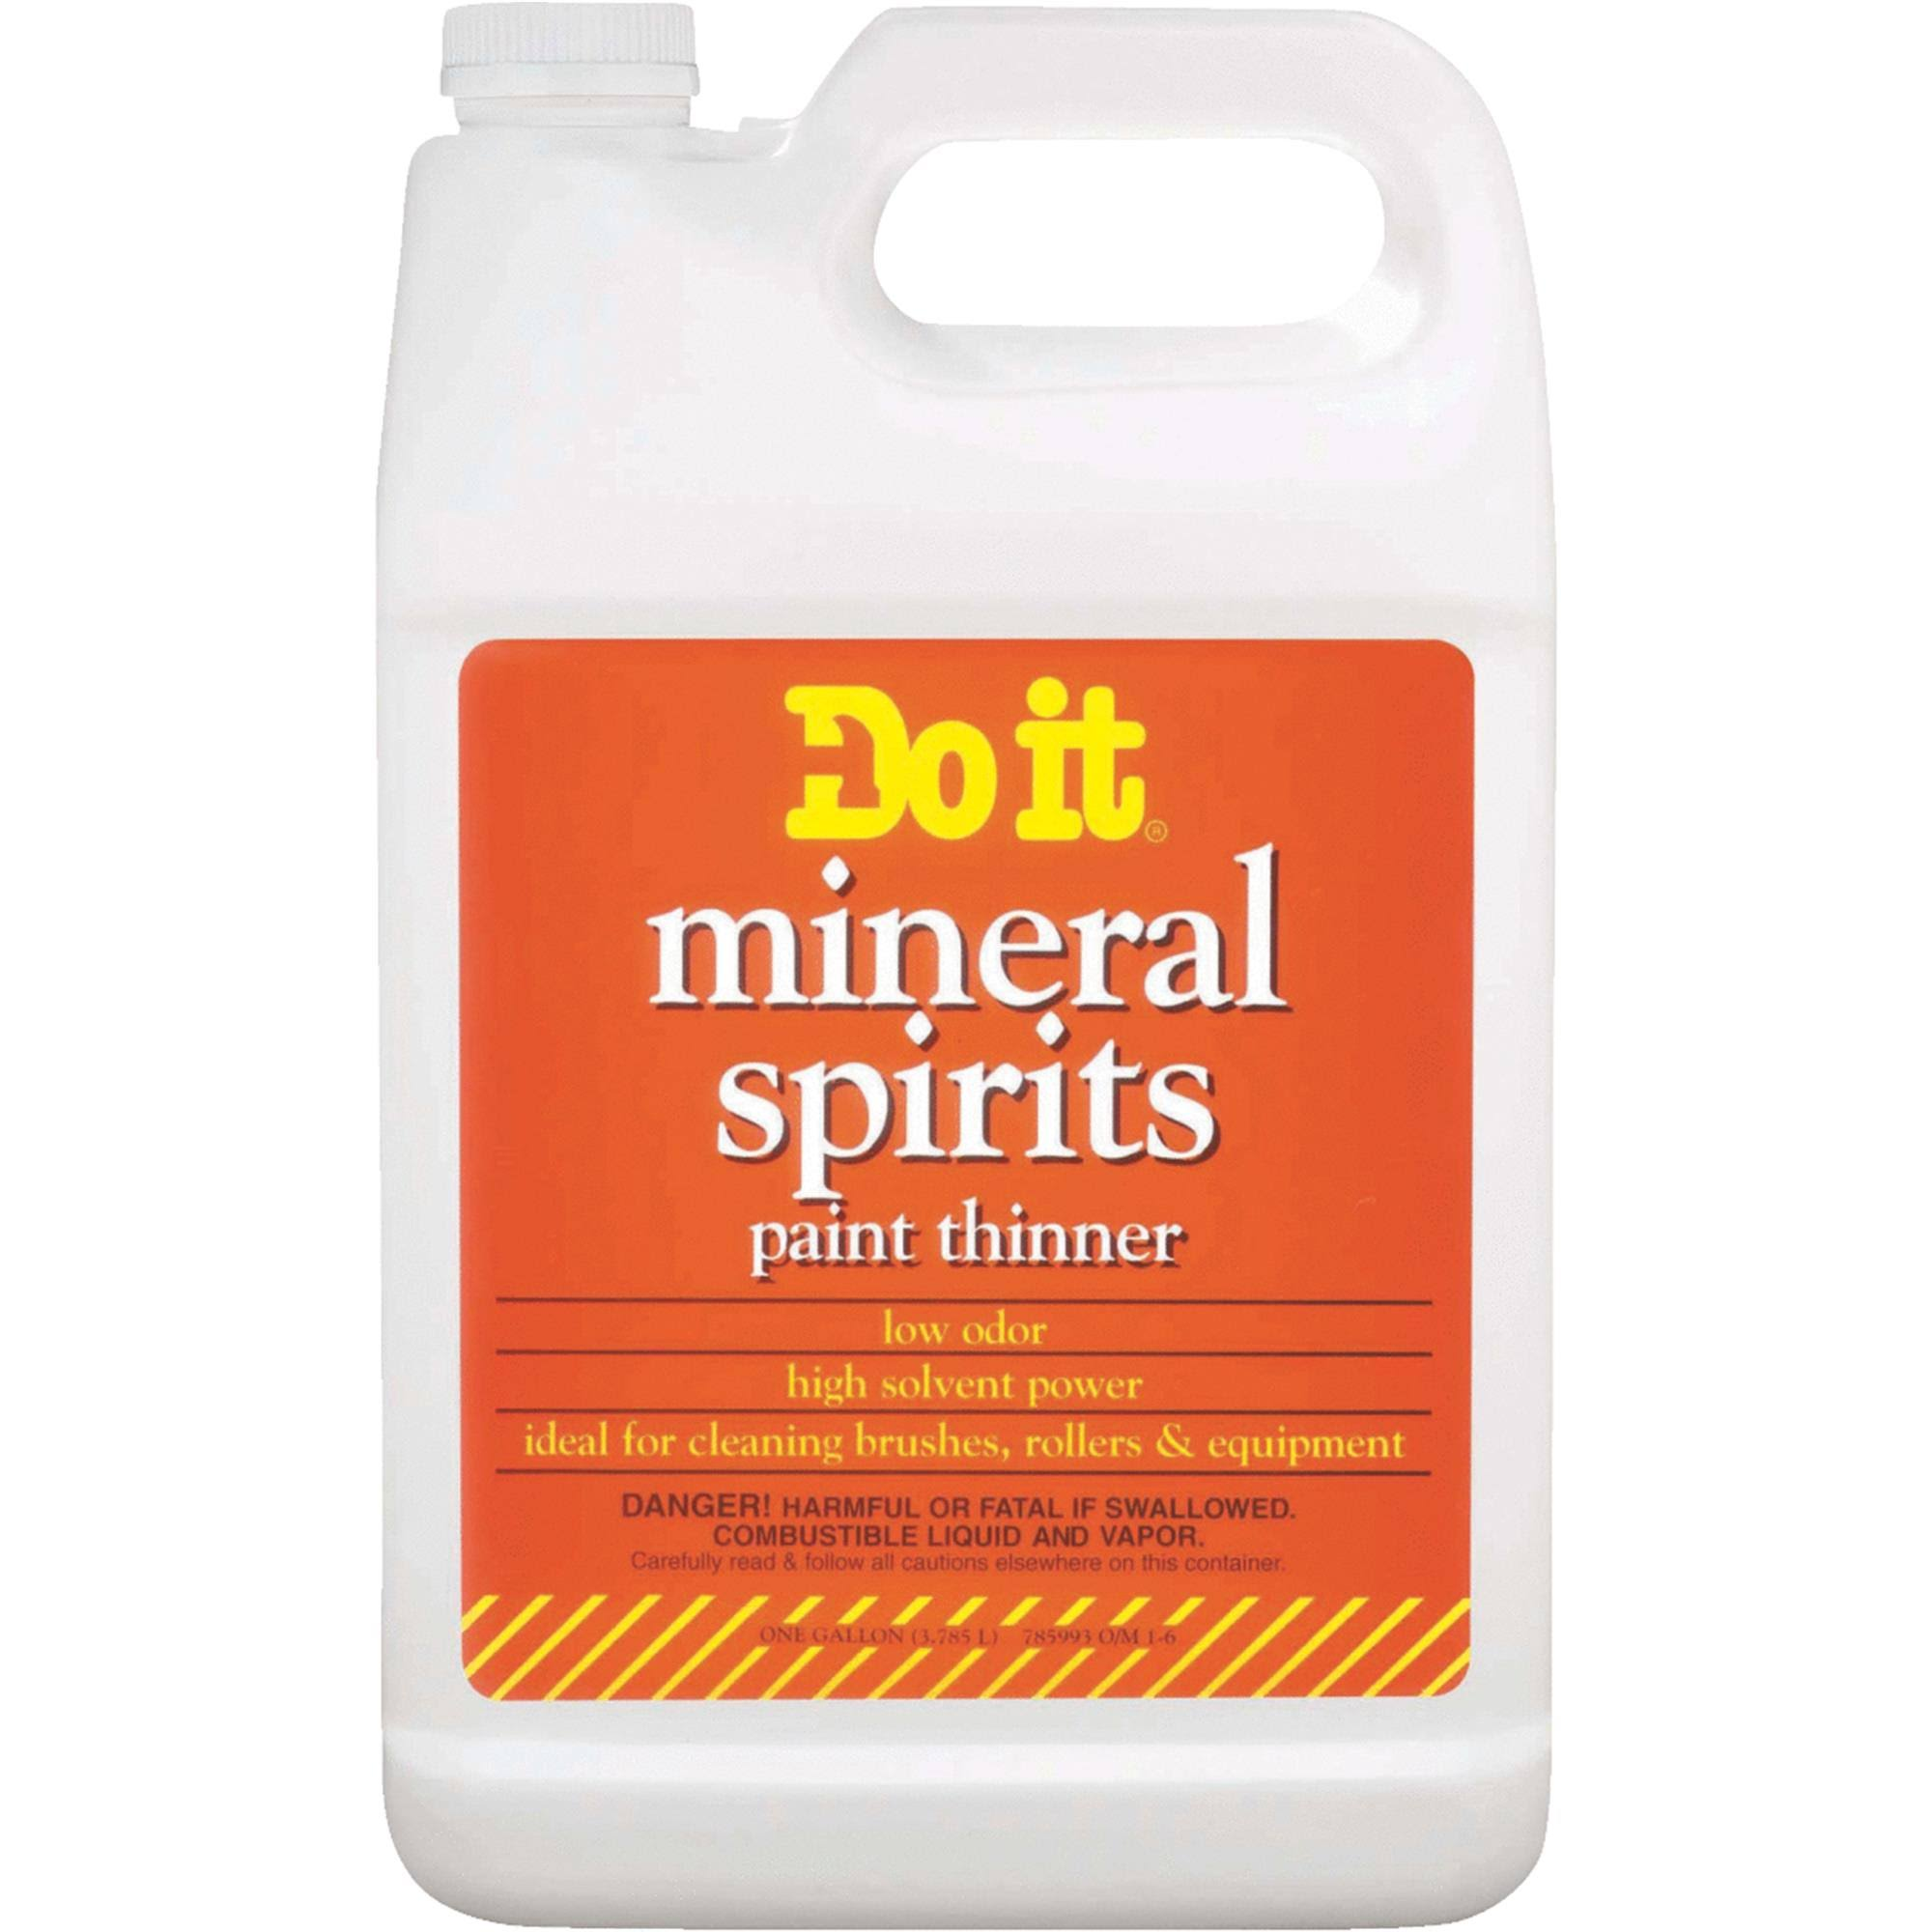 Do it Best Mineral Spirits Paint Thinner